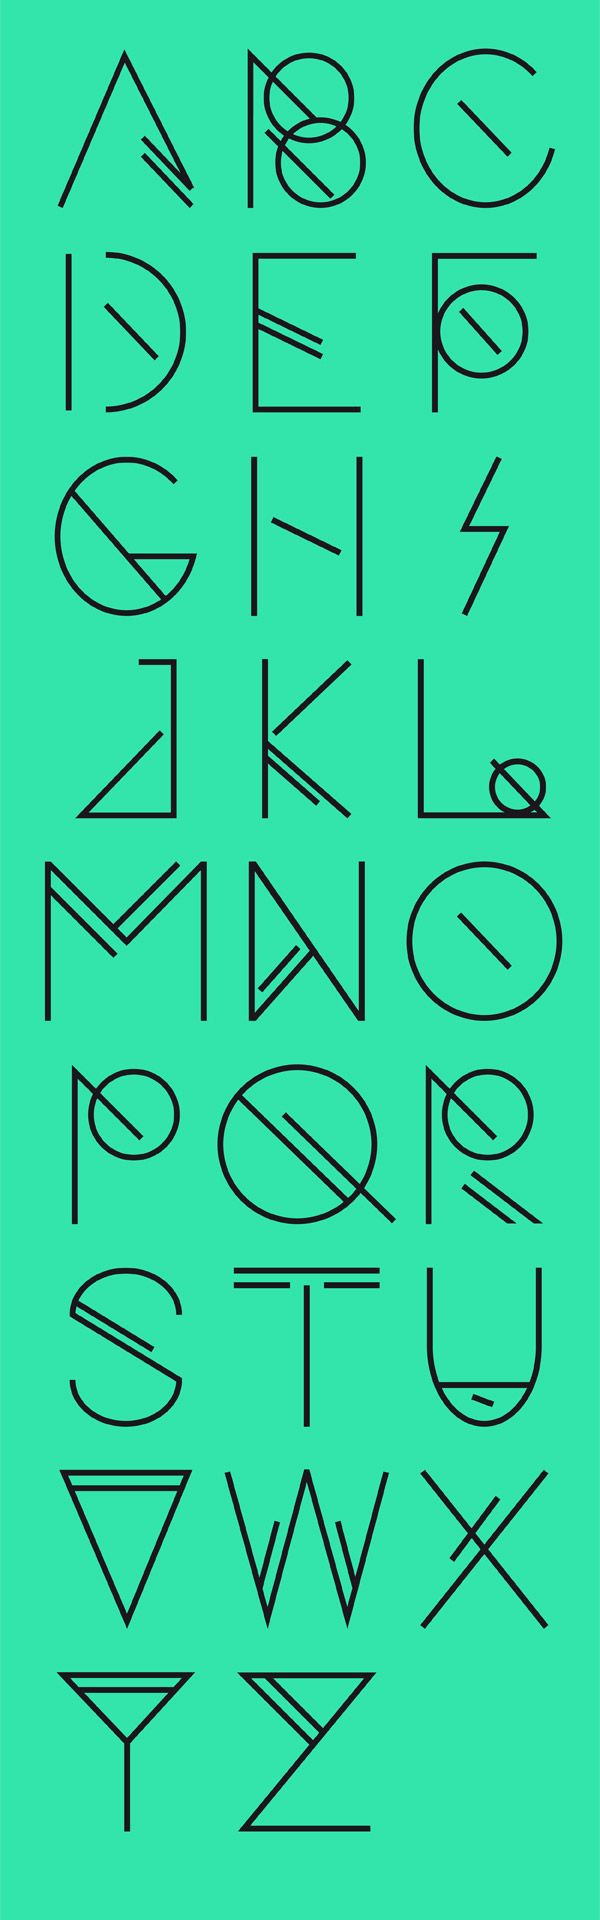 Foresee - Free Font - Art Deco yet Eighties all in one!